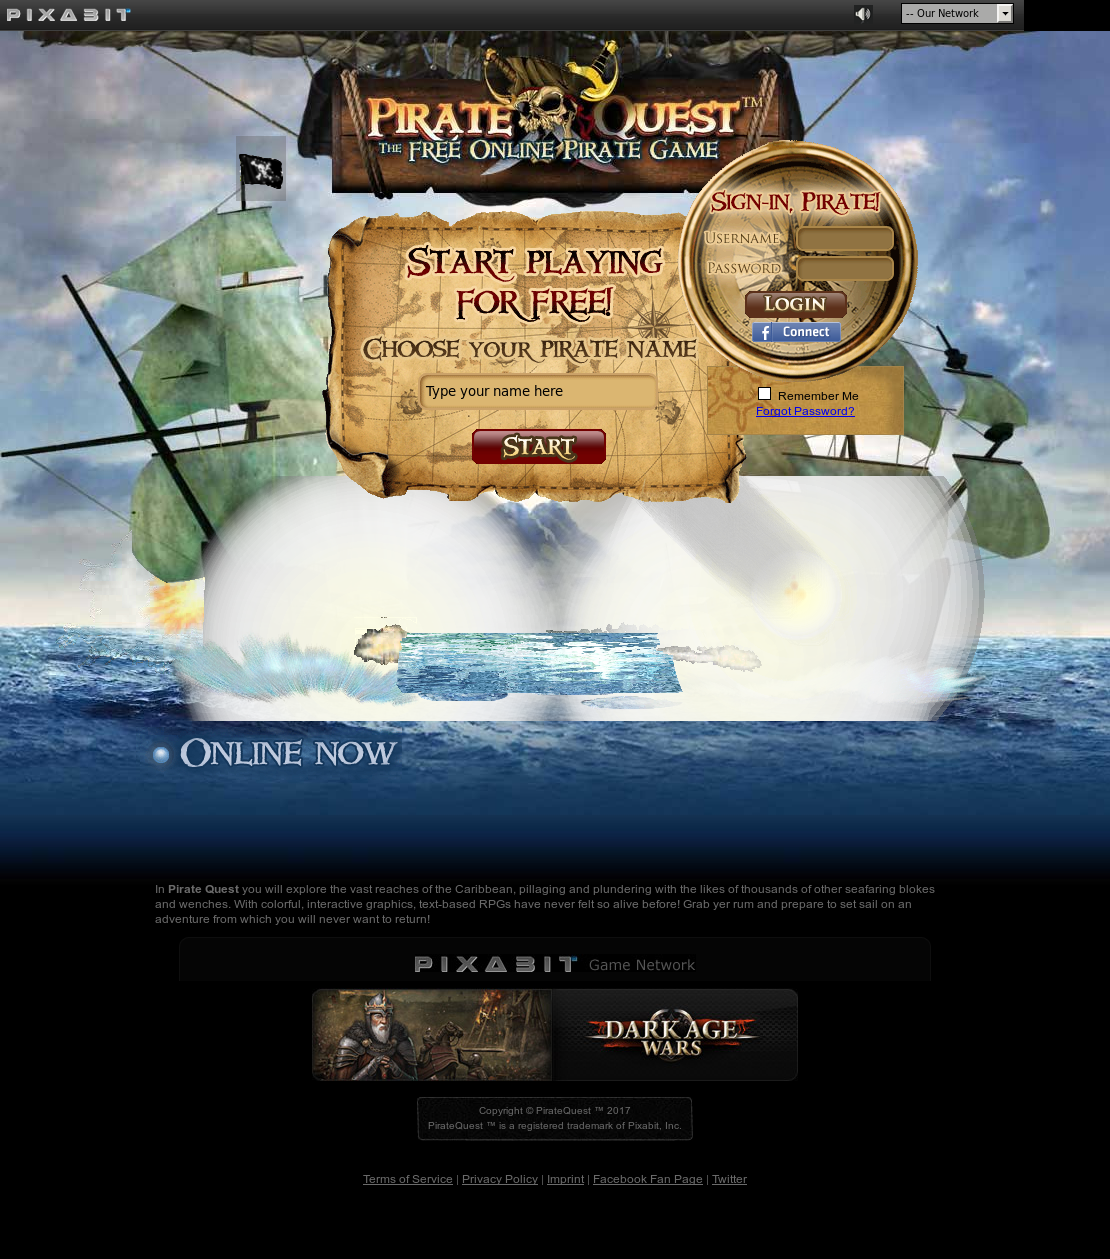 Pirate Quest Competitors, Revenue and Employees - Owler